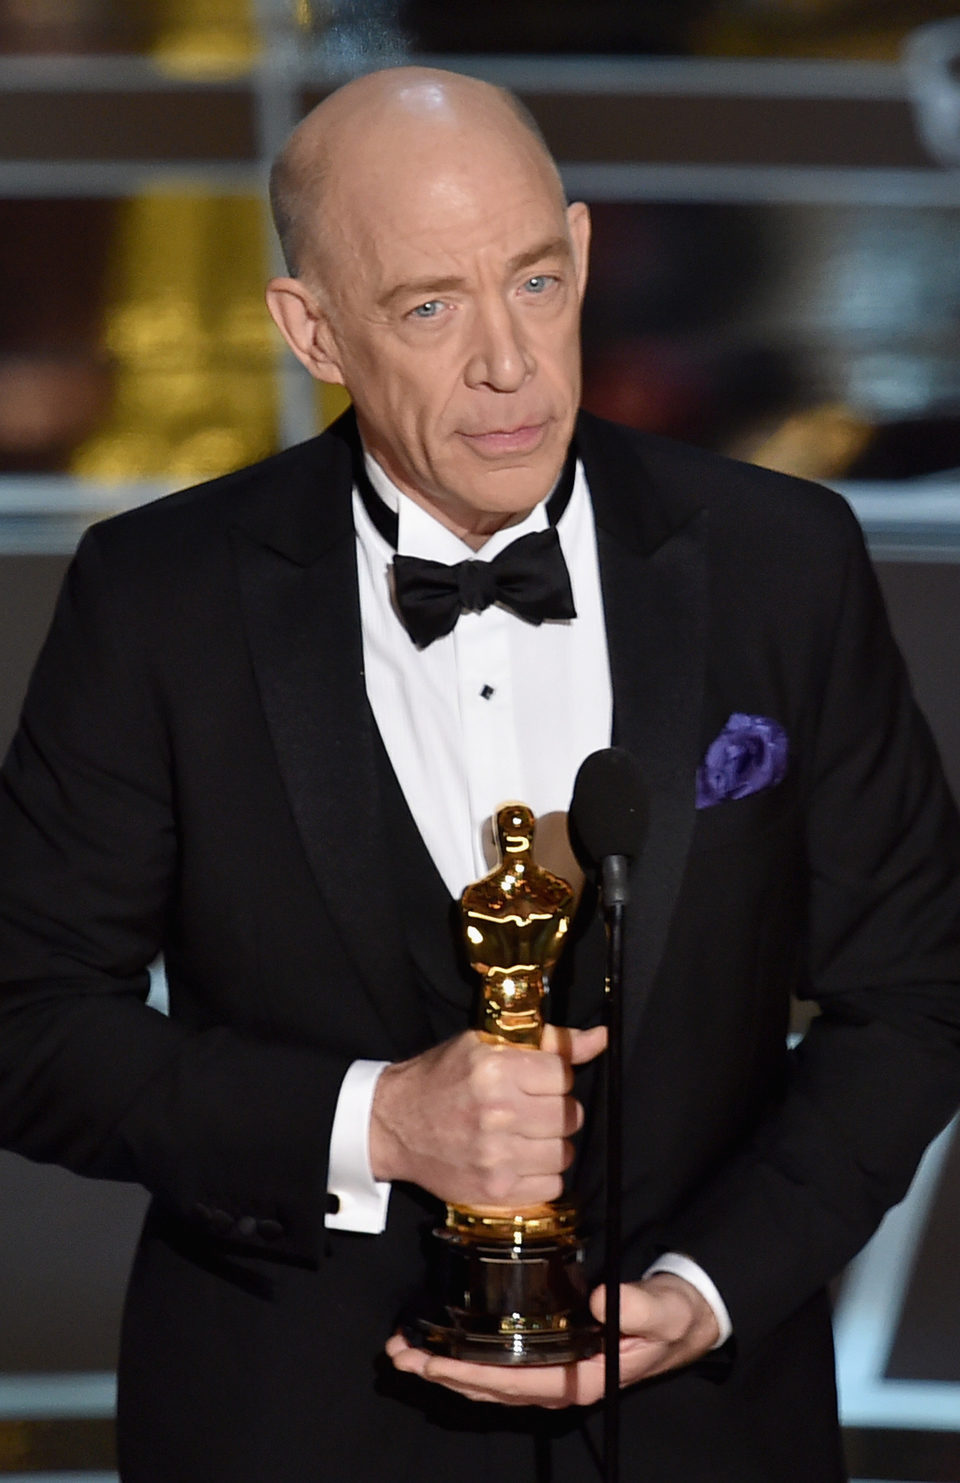 J.K. Simmons receives the Best Actor in a Supporting Role Oscar Award